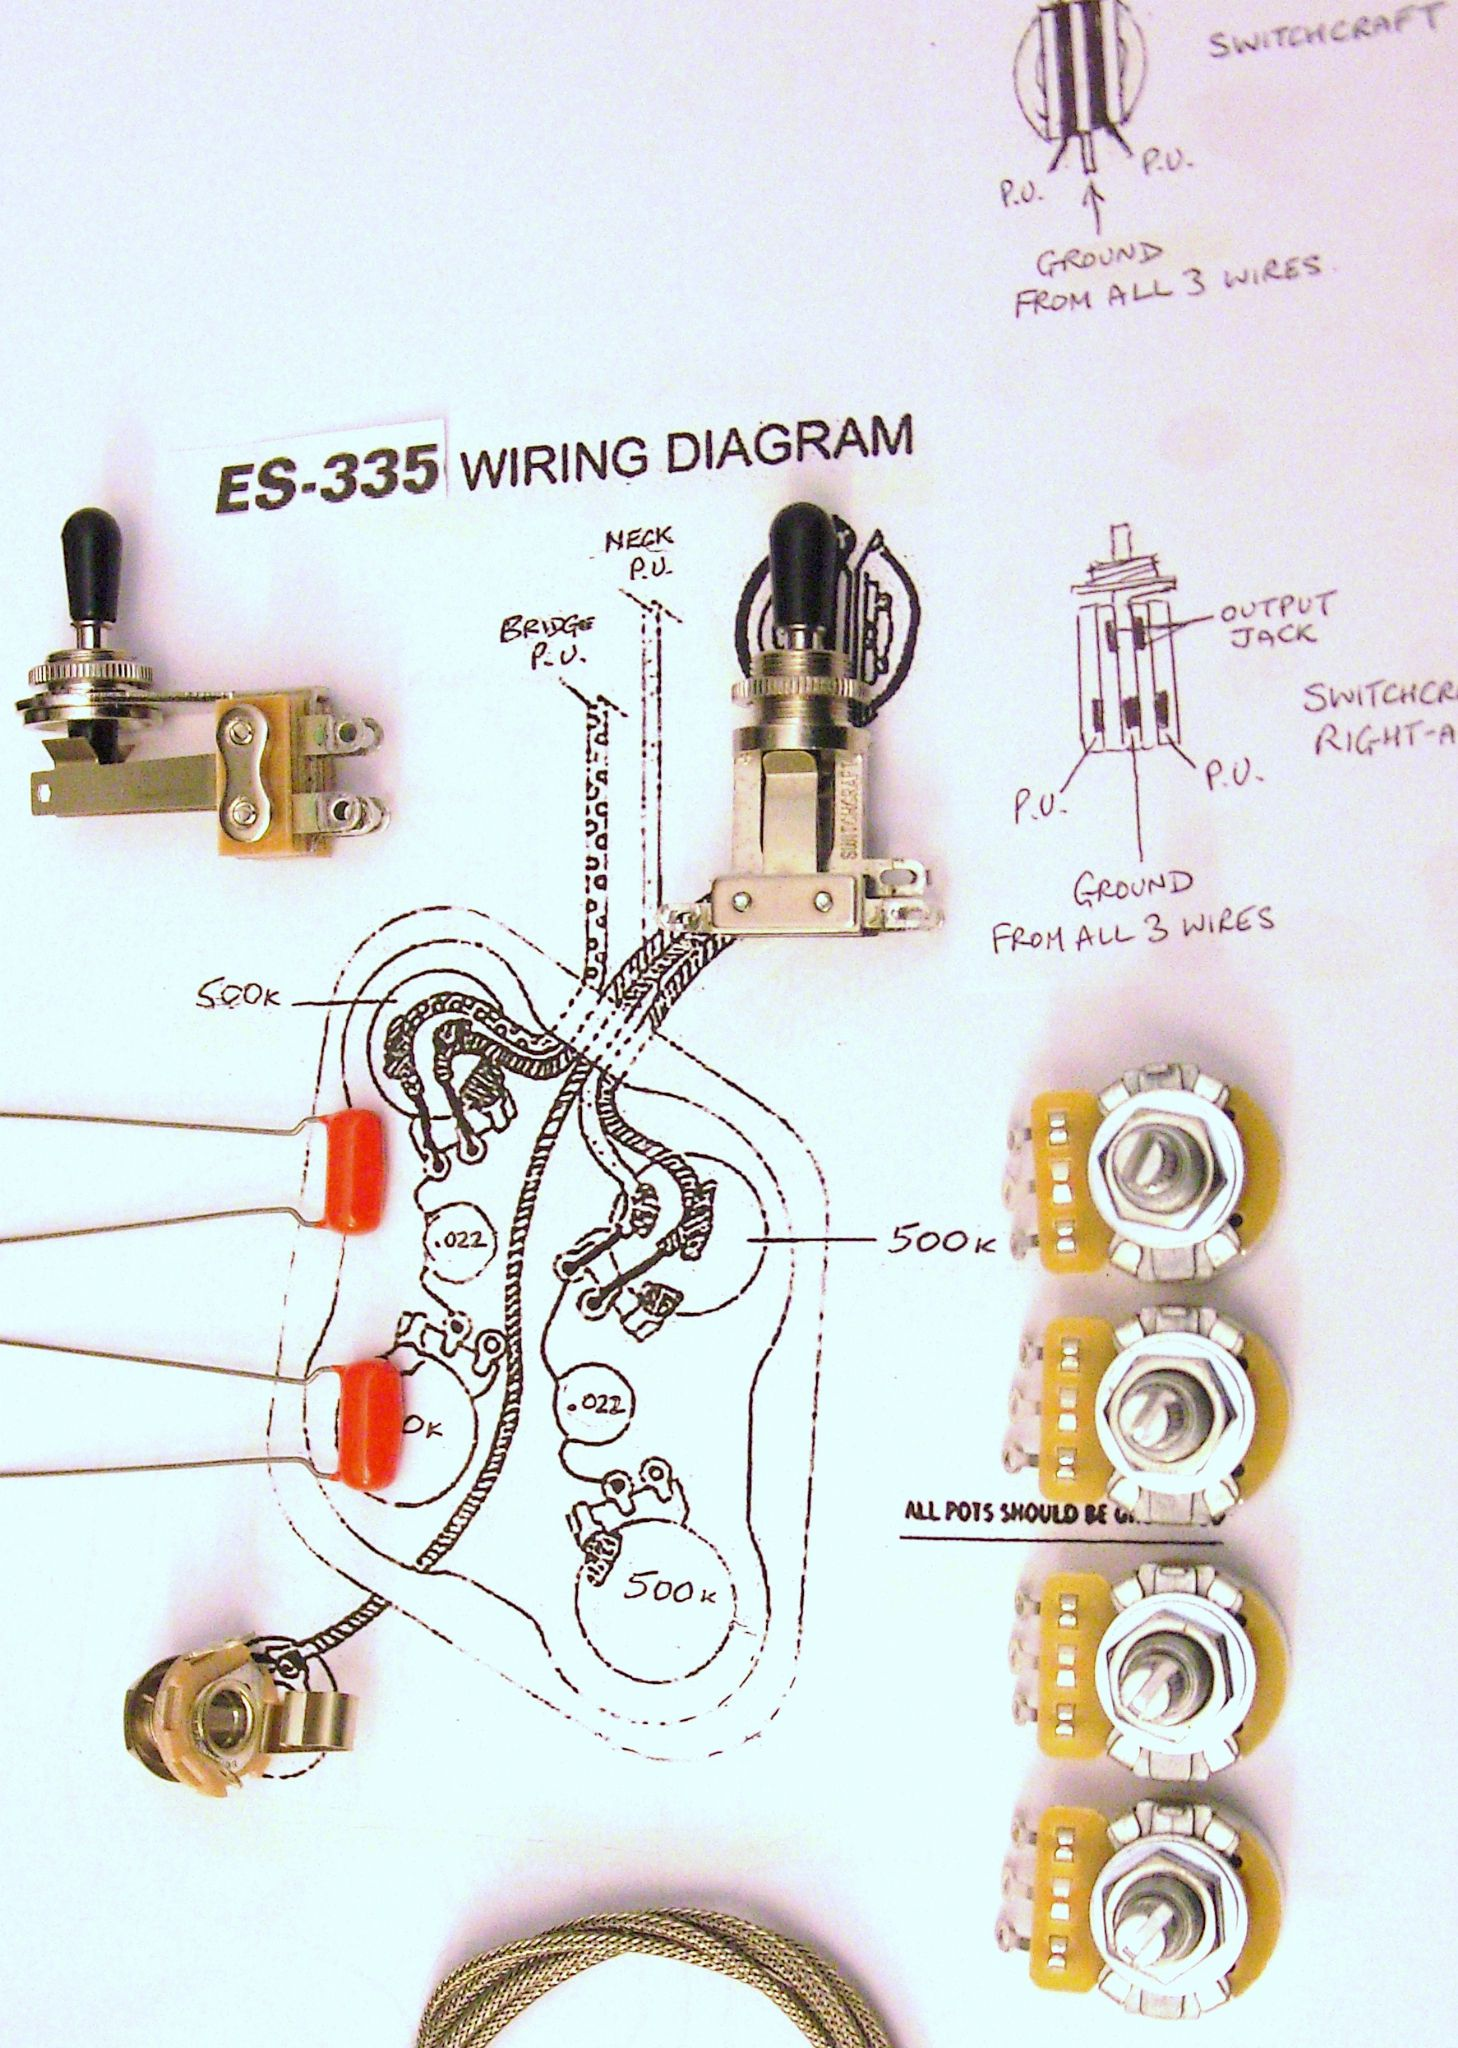 wiring kit for 335 with short switchcraft toggle switch 1767 p wiring kit for 335 with short switchcraft toggle switch switchcraft jack wiring diagram at creativeand.co